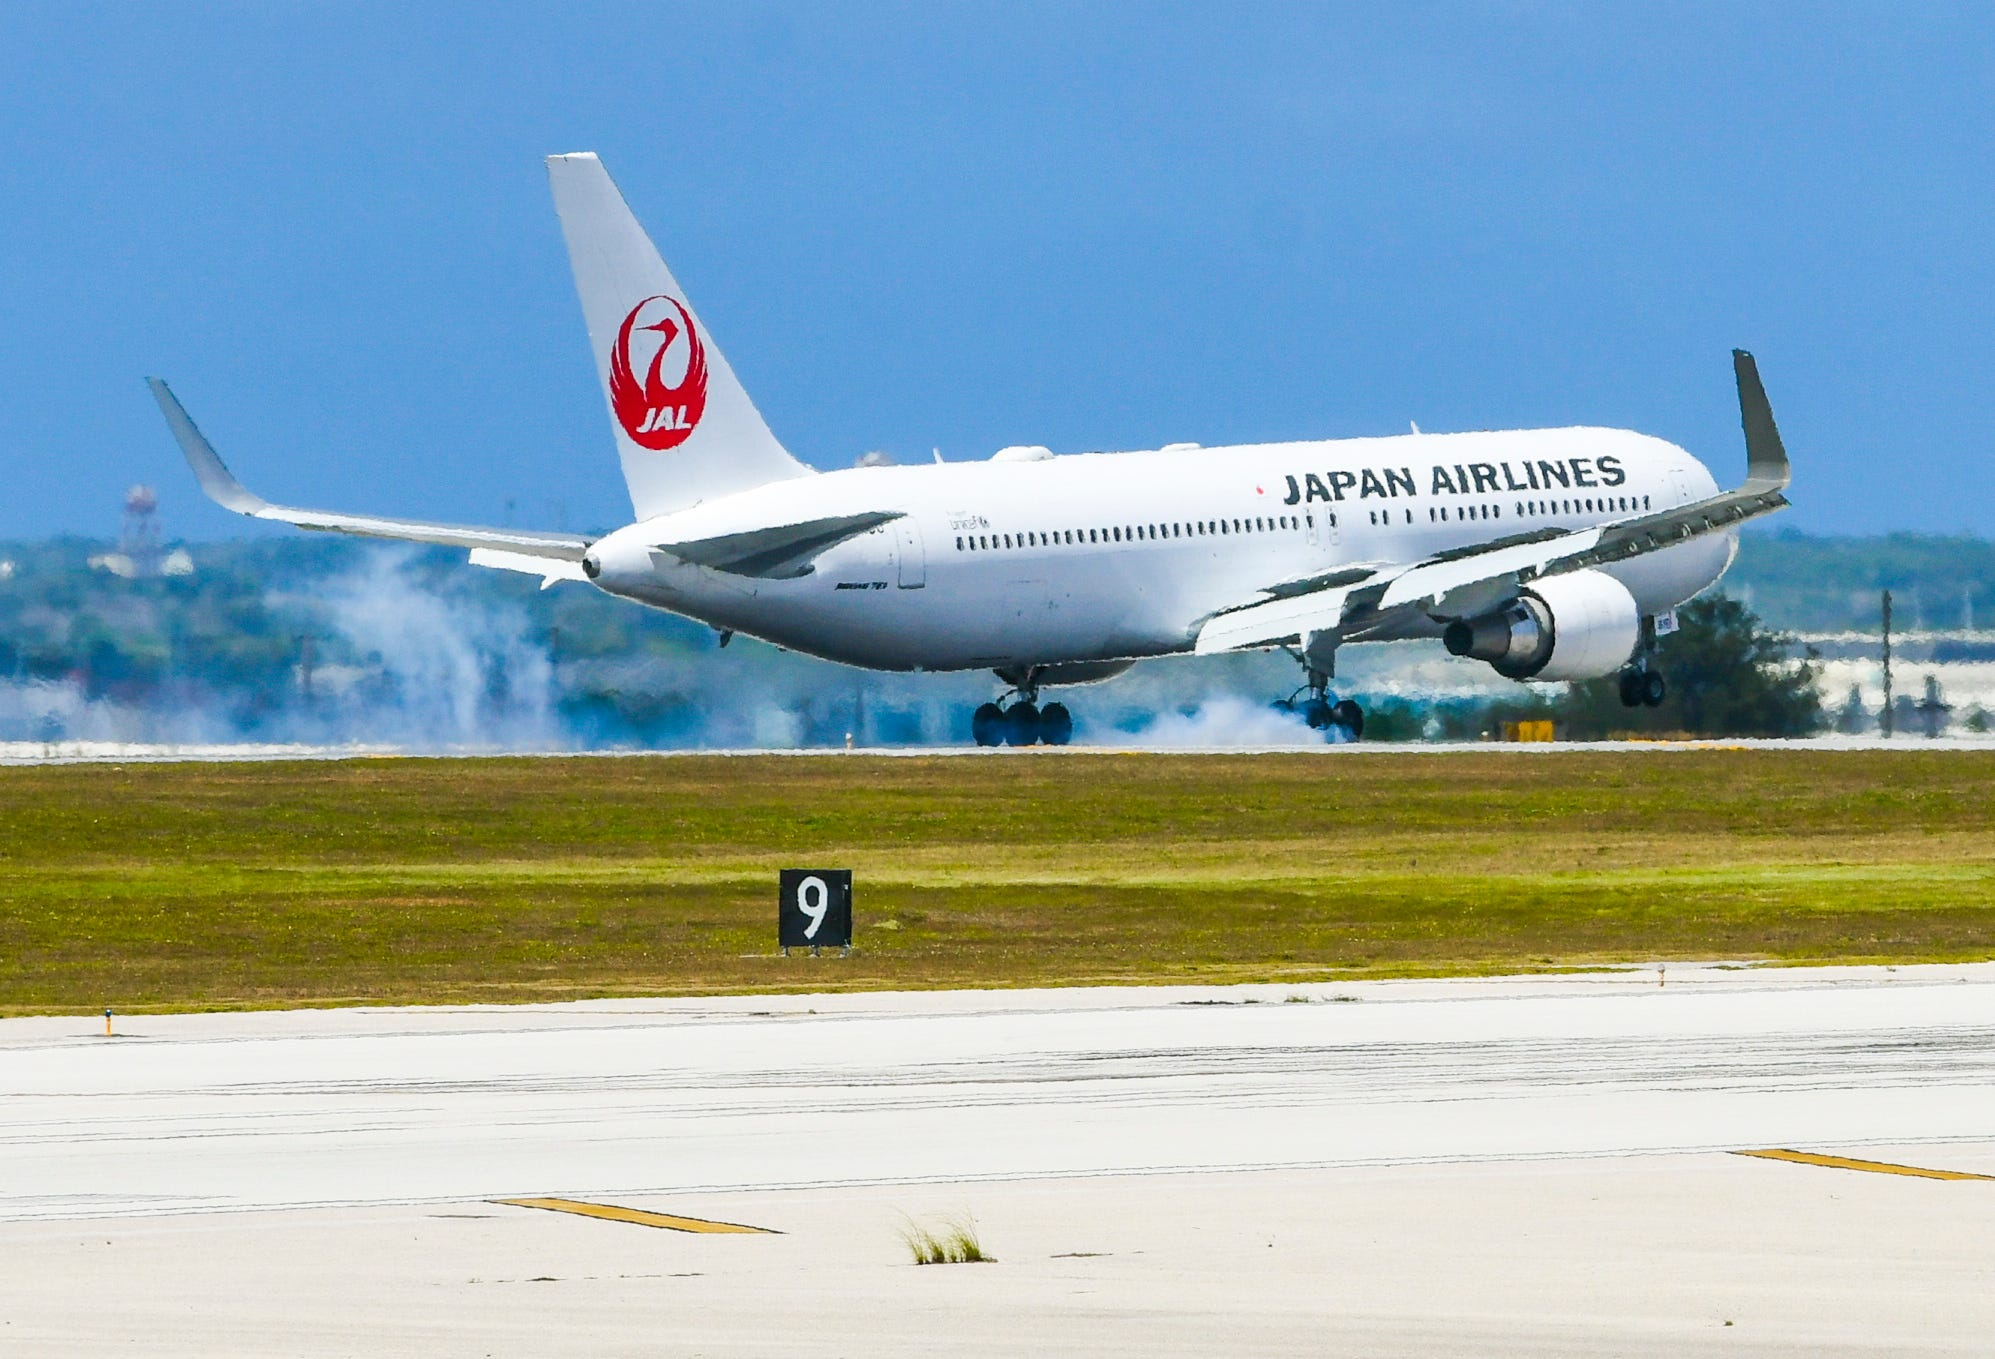 Japan closes borders, limits travel to citizens after new COVID-19 strain from UK emerges